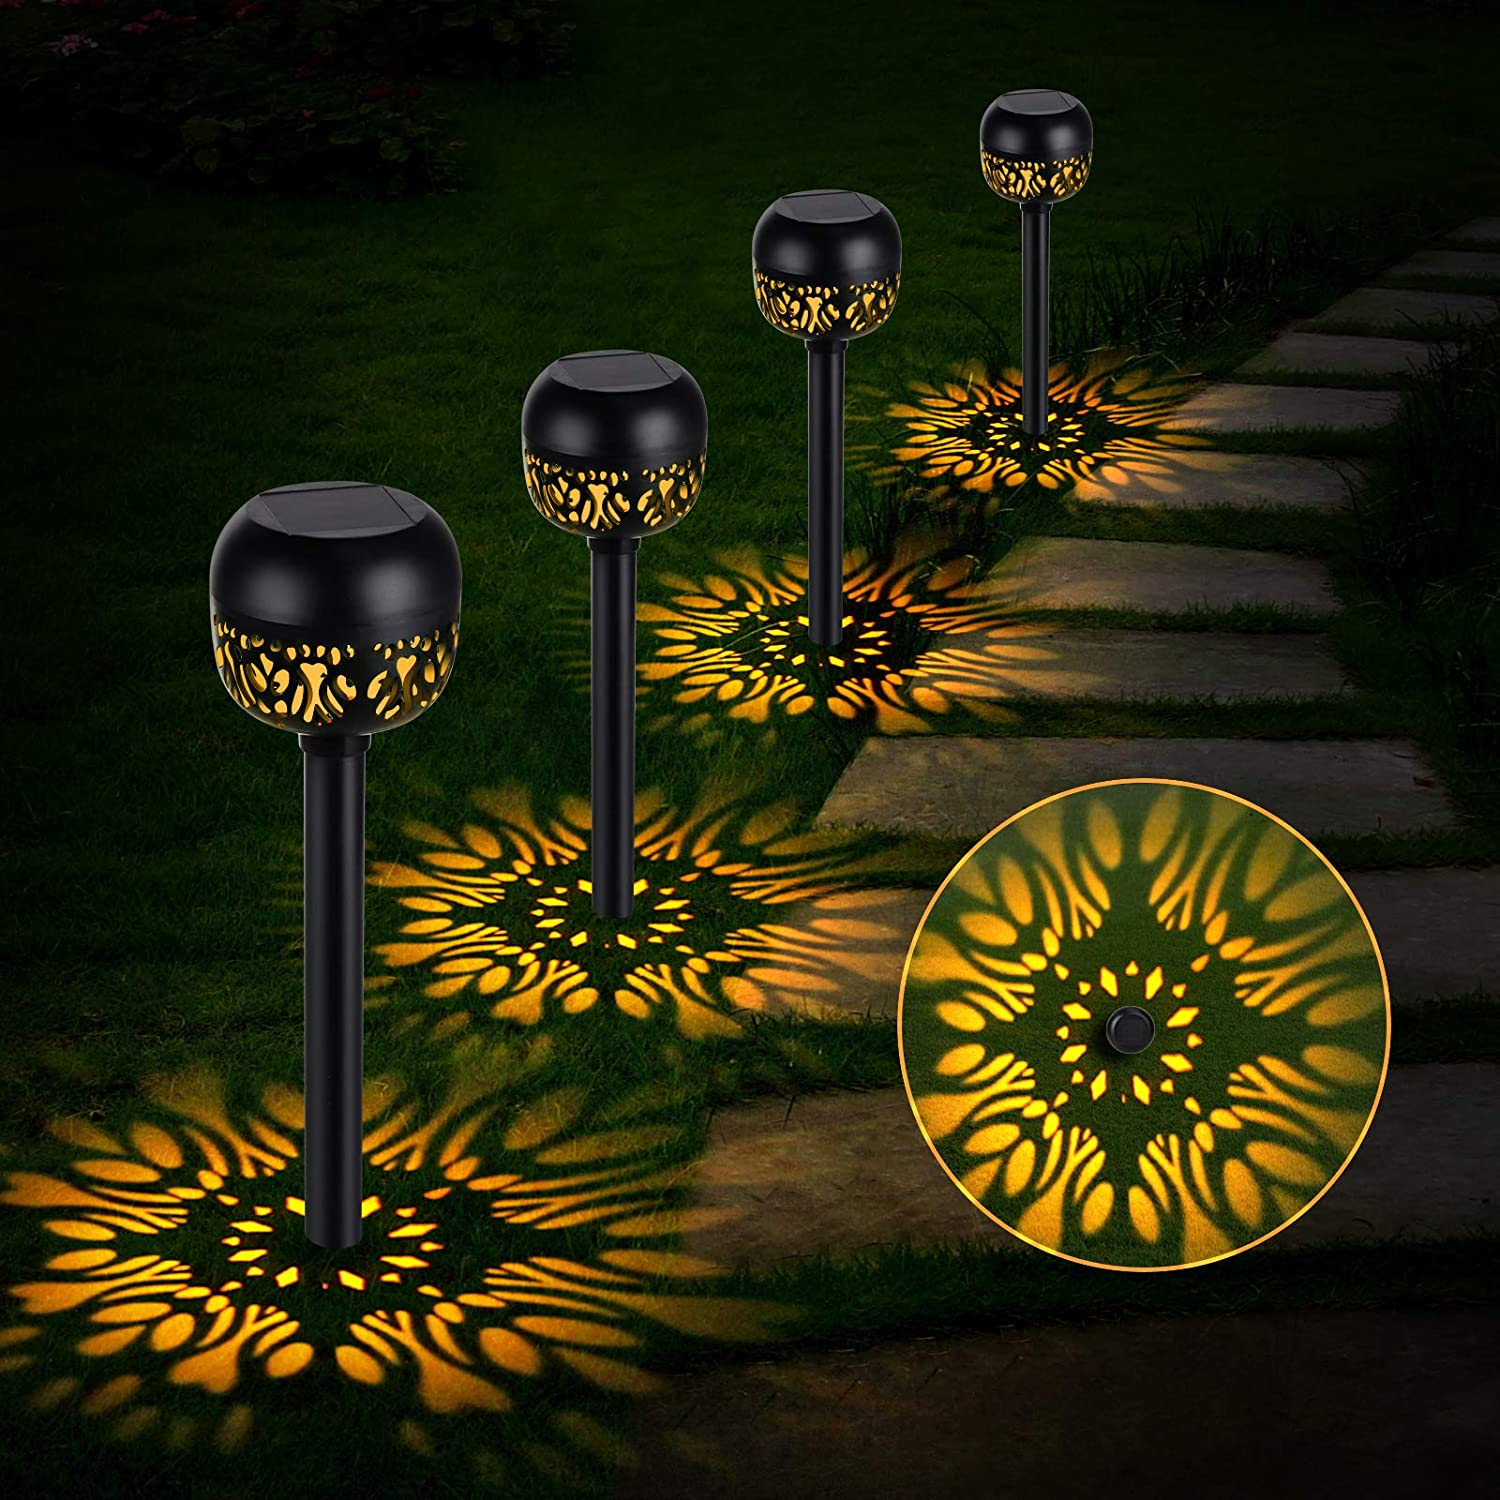 OOWOLF Solar Pathway Lights Outdoor, 4 Pack Solar Powered Garden Lamp Solar Landscape Lights IP65 Waterproof Led Path Lamp Decorative Lighting for Patio Lawn Yard Landscape, Warm-Red Light